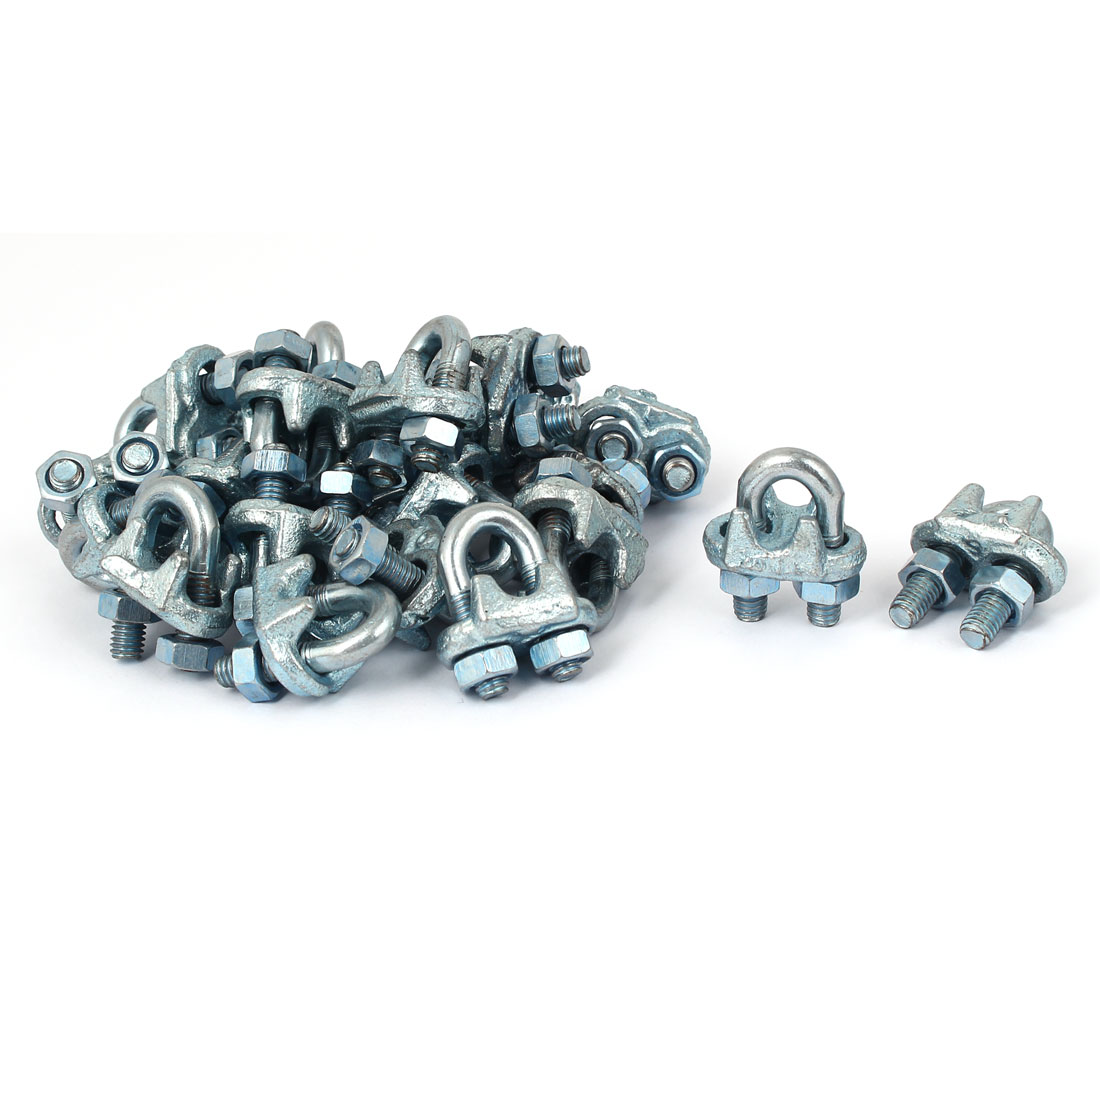 6mm Inner Width Stainless Steel Wire Rope Cable Clip Saddle Clamp Fastener 24pcs